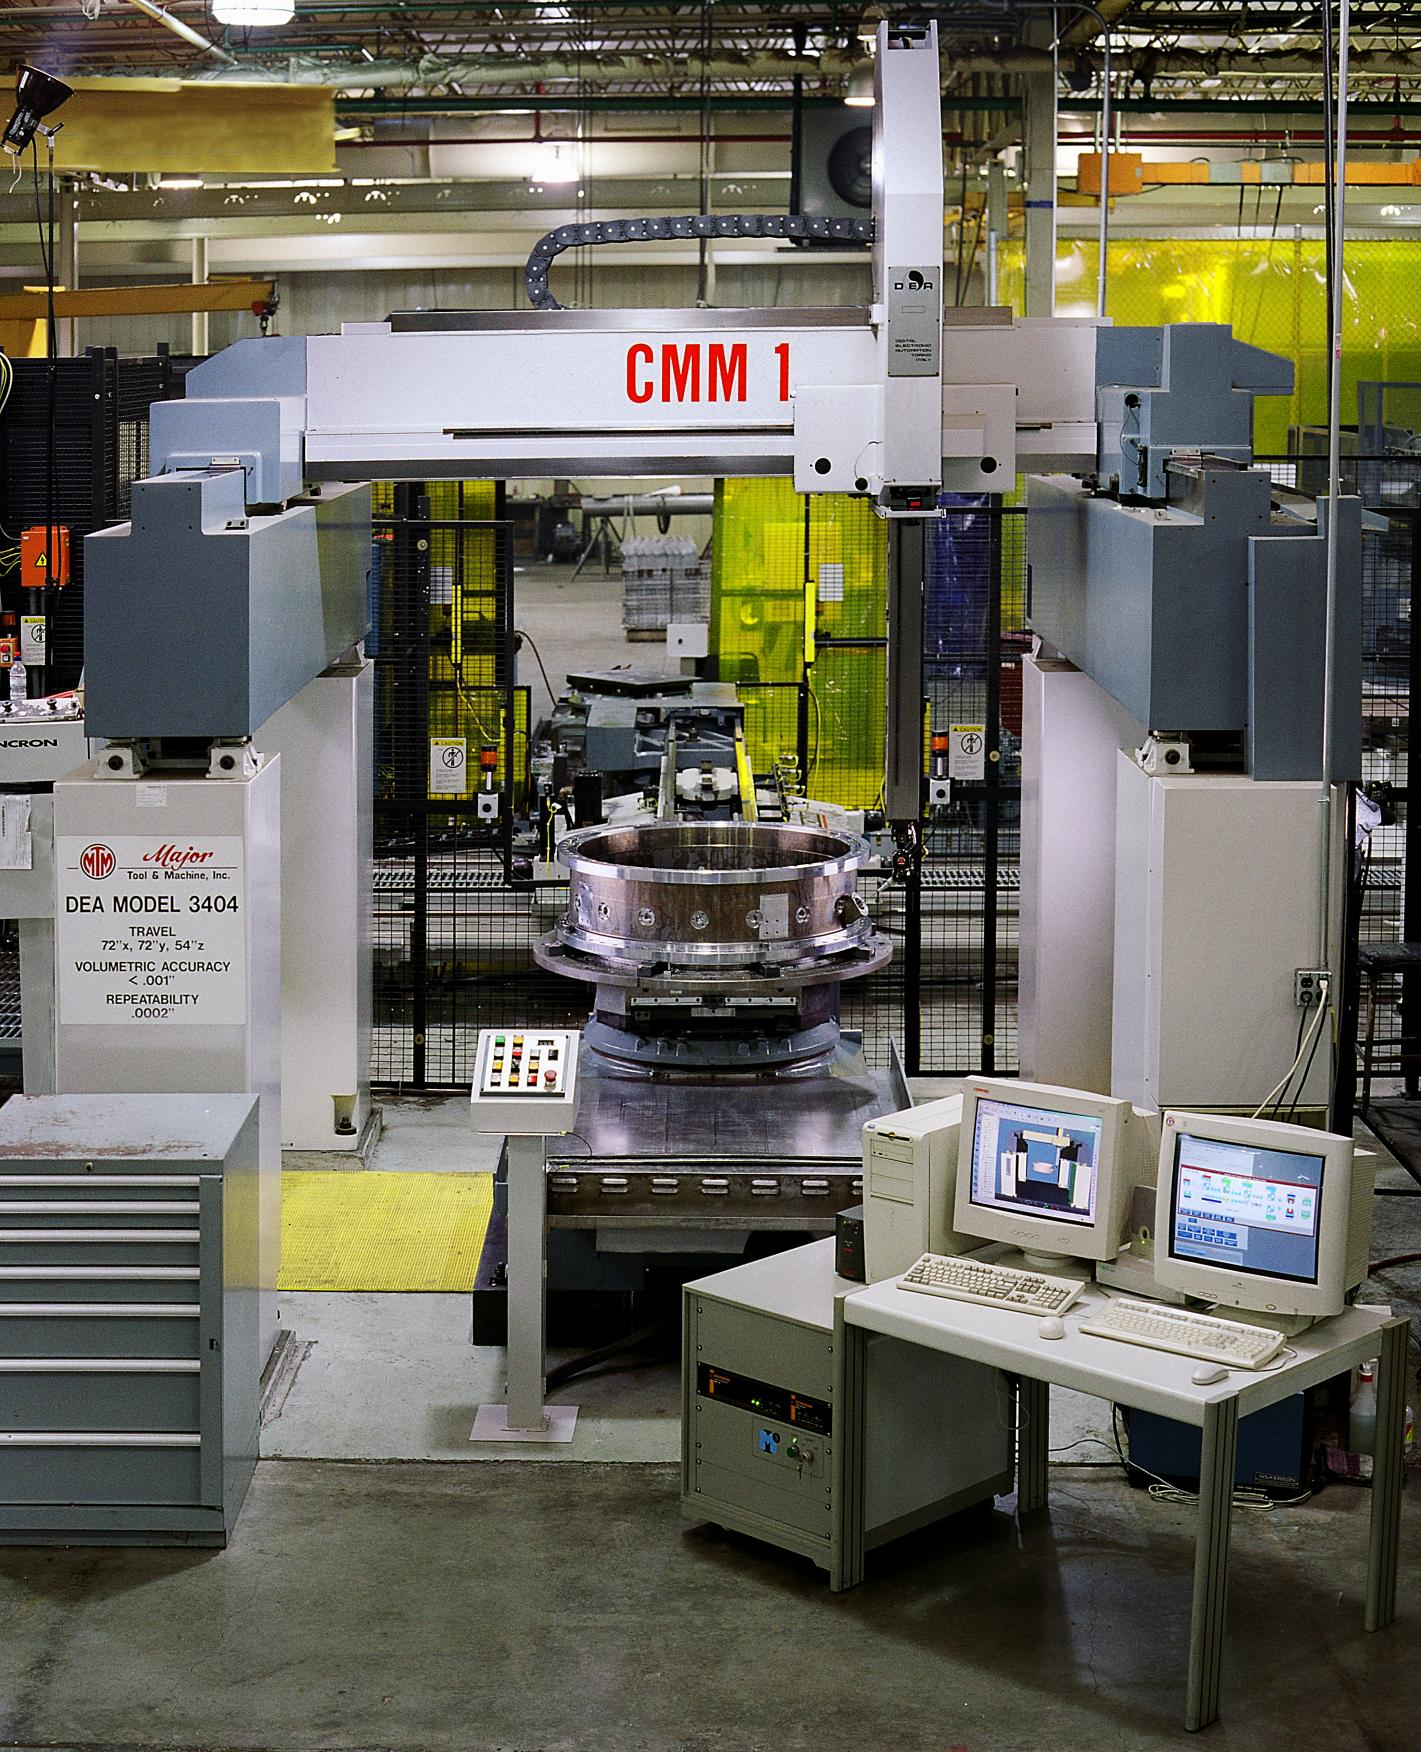 Flexible Manufacturing Cell - CMM   Four - Cincinnati Milacron T35 N, 5-axis, twin pallet  Two - Giddings & Lewis VTC 1600 Lathes  One - Integrated DEA CMM  Two - Integrated Load/Unload Stations